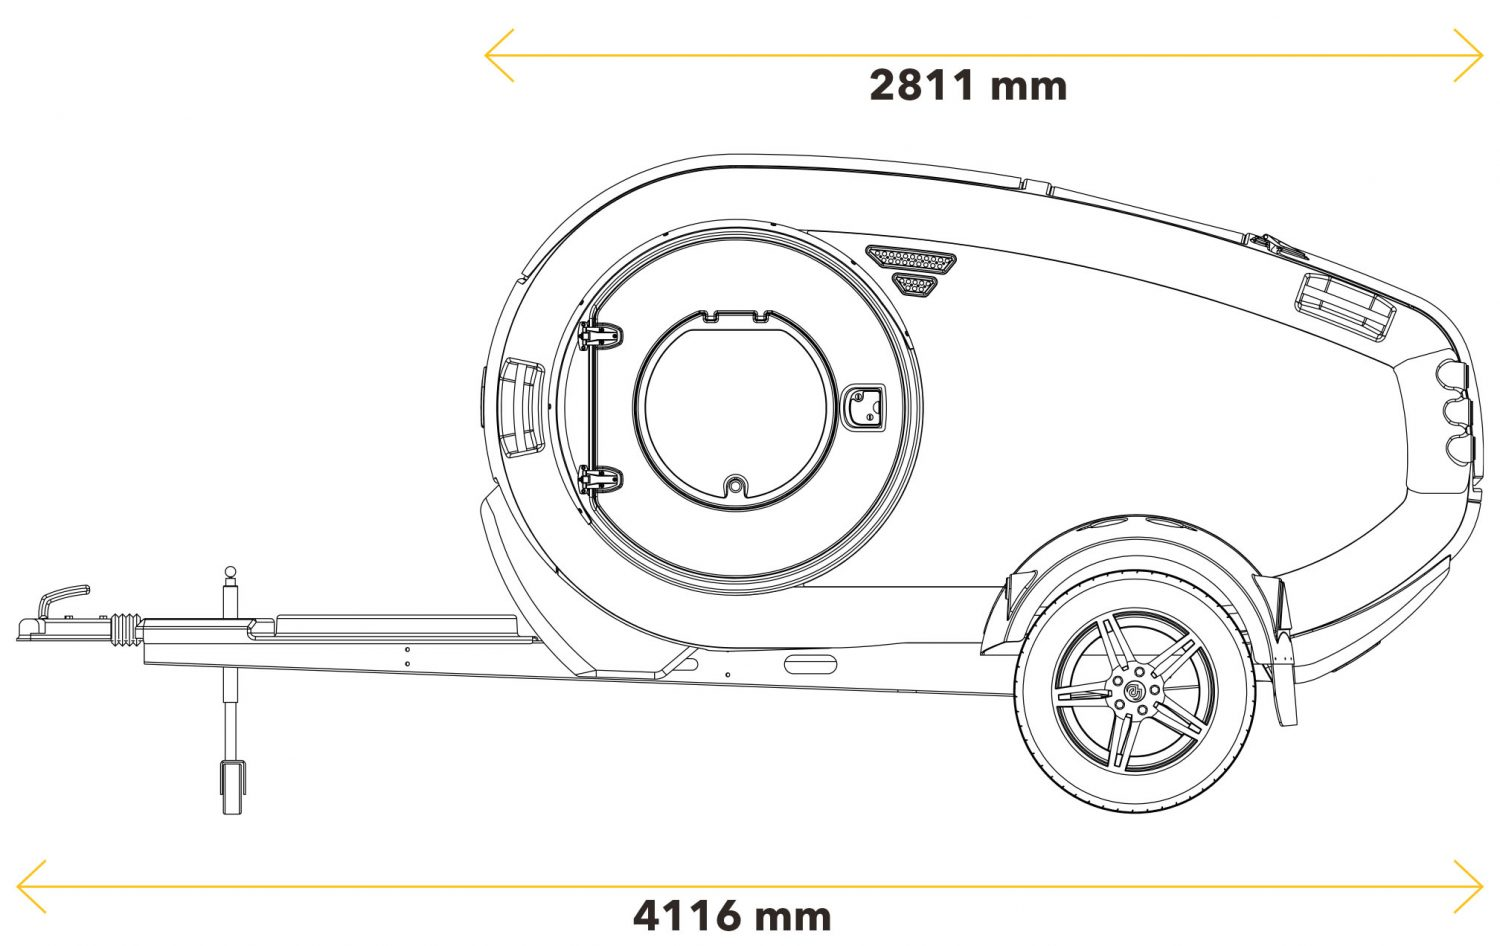 Mink teardrop trailer diagram